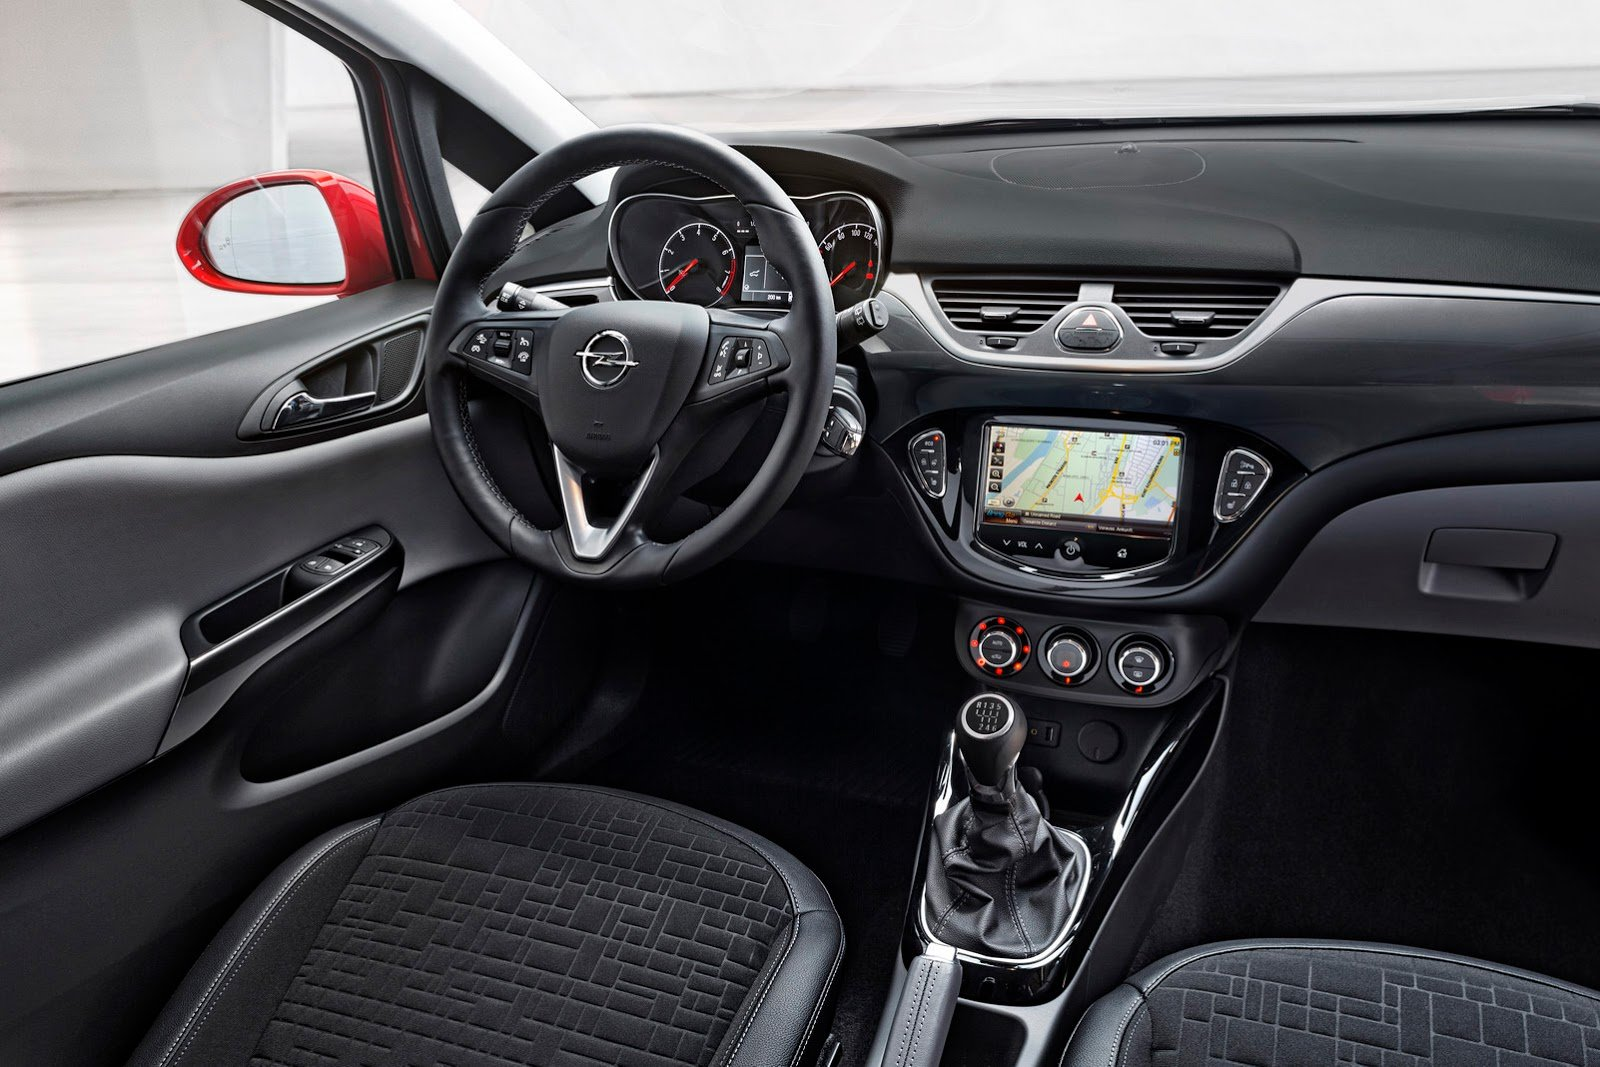 2014 opel corsa red germany cars interior wallpaper for Opel corsa e interieur